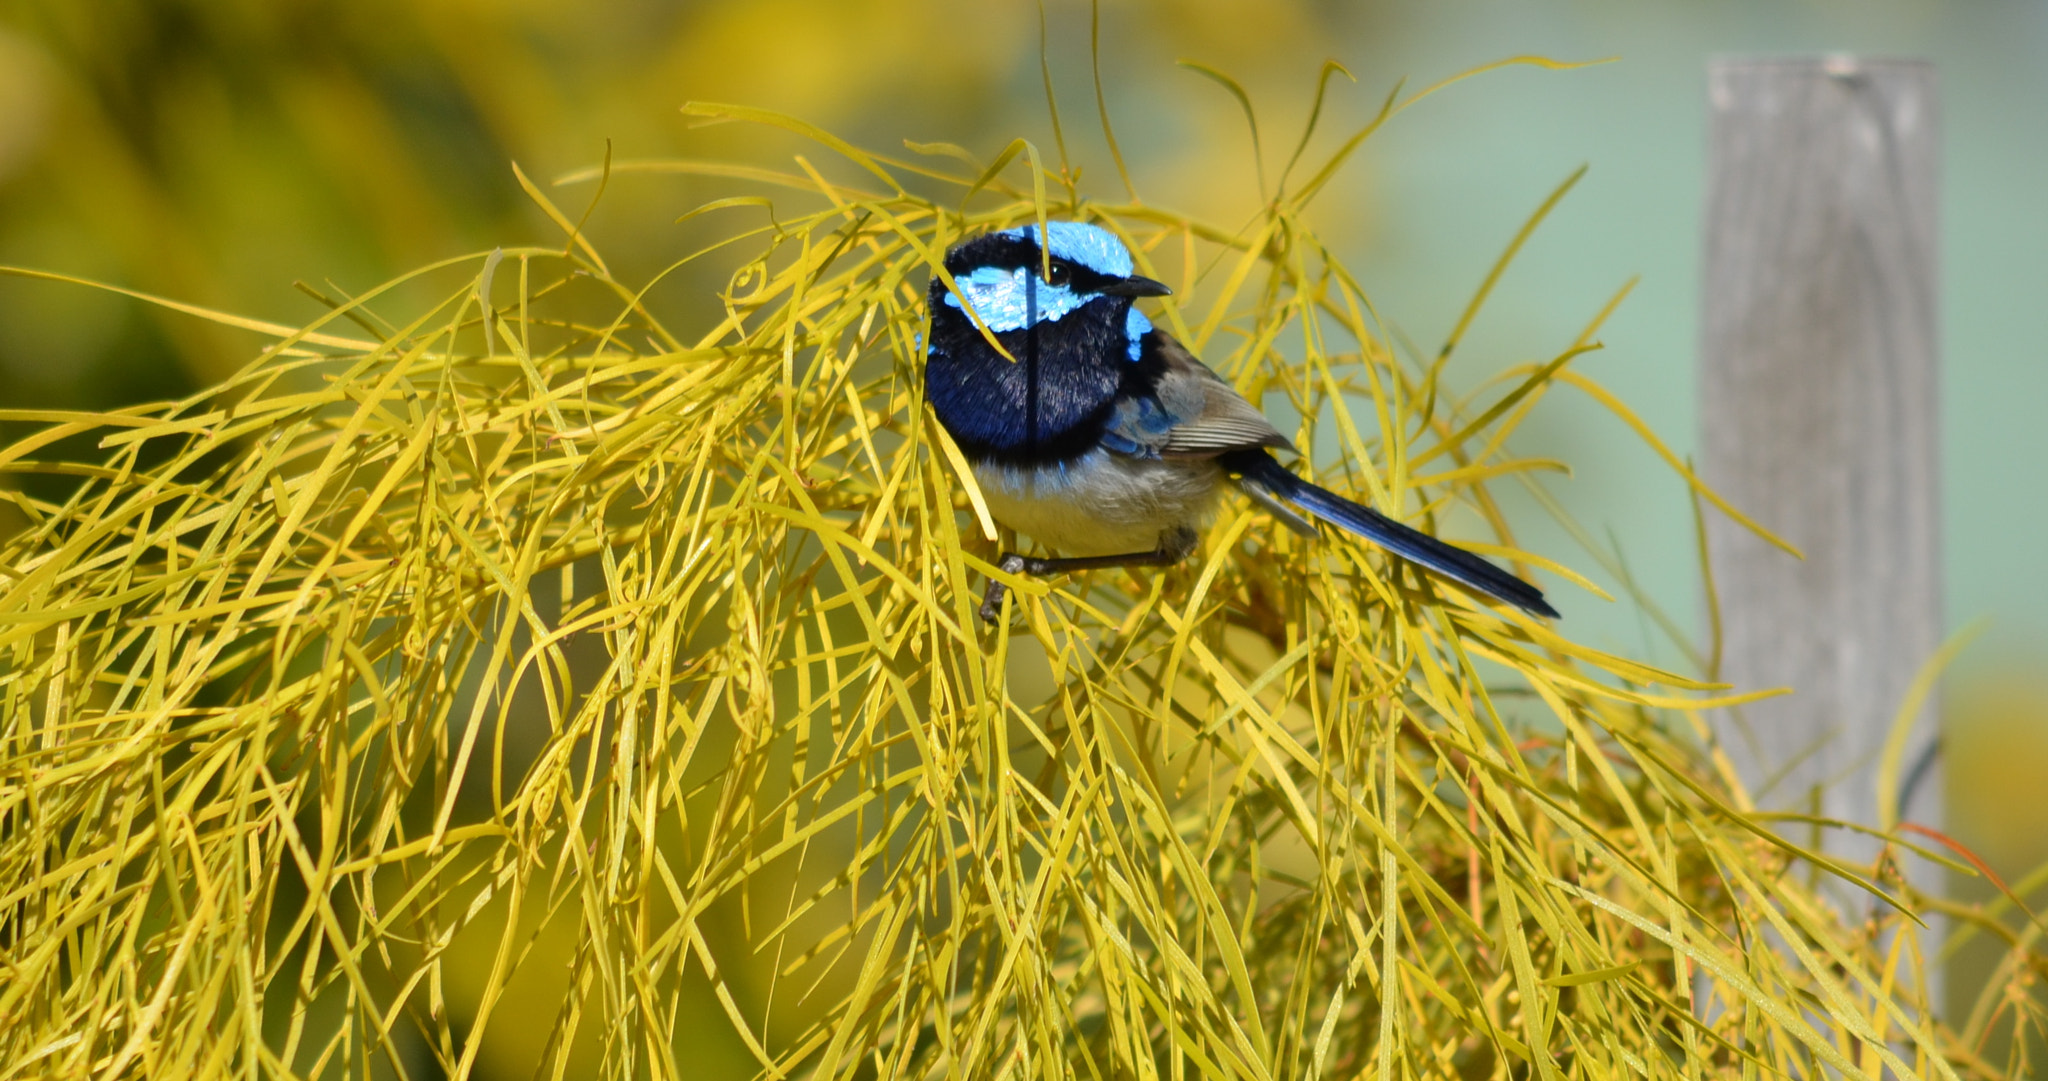 Photograph Superb Fairy Wren by Gerri Jones on 500px